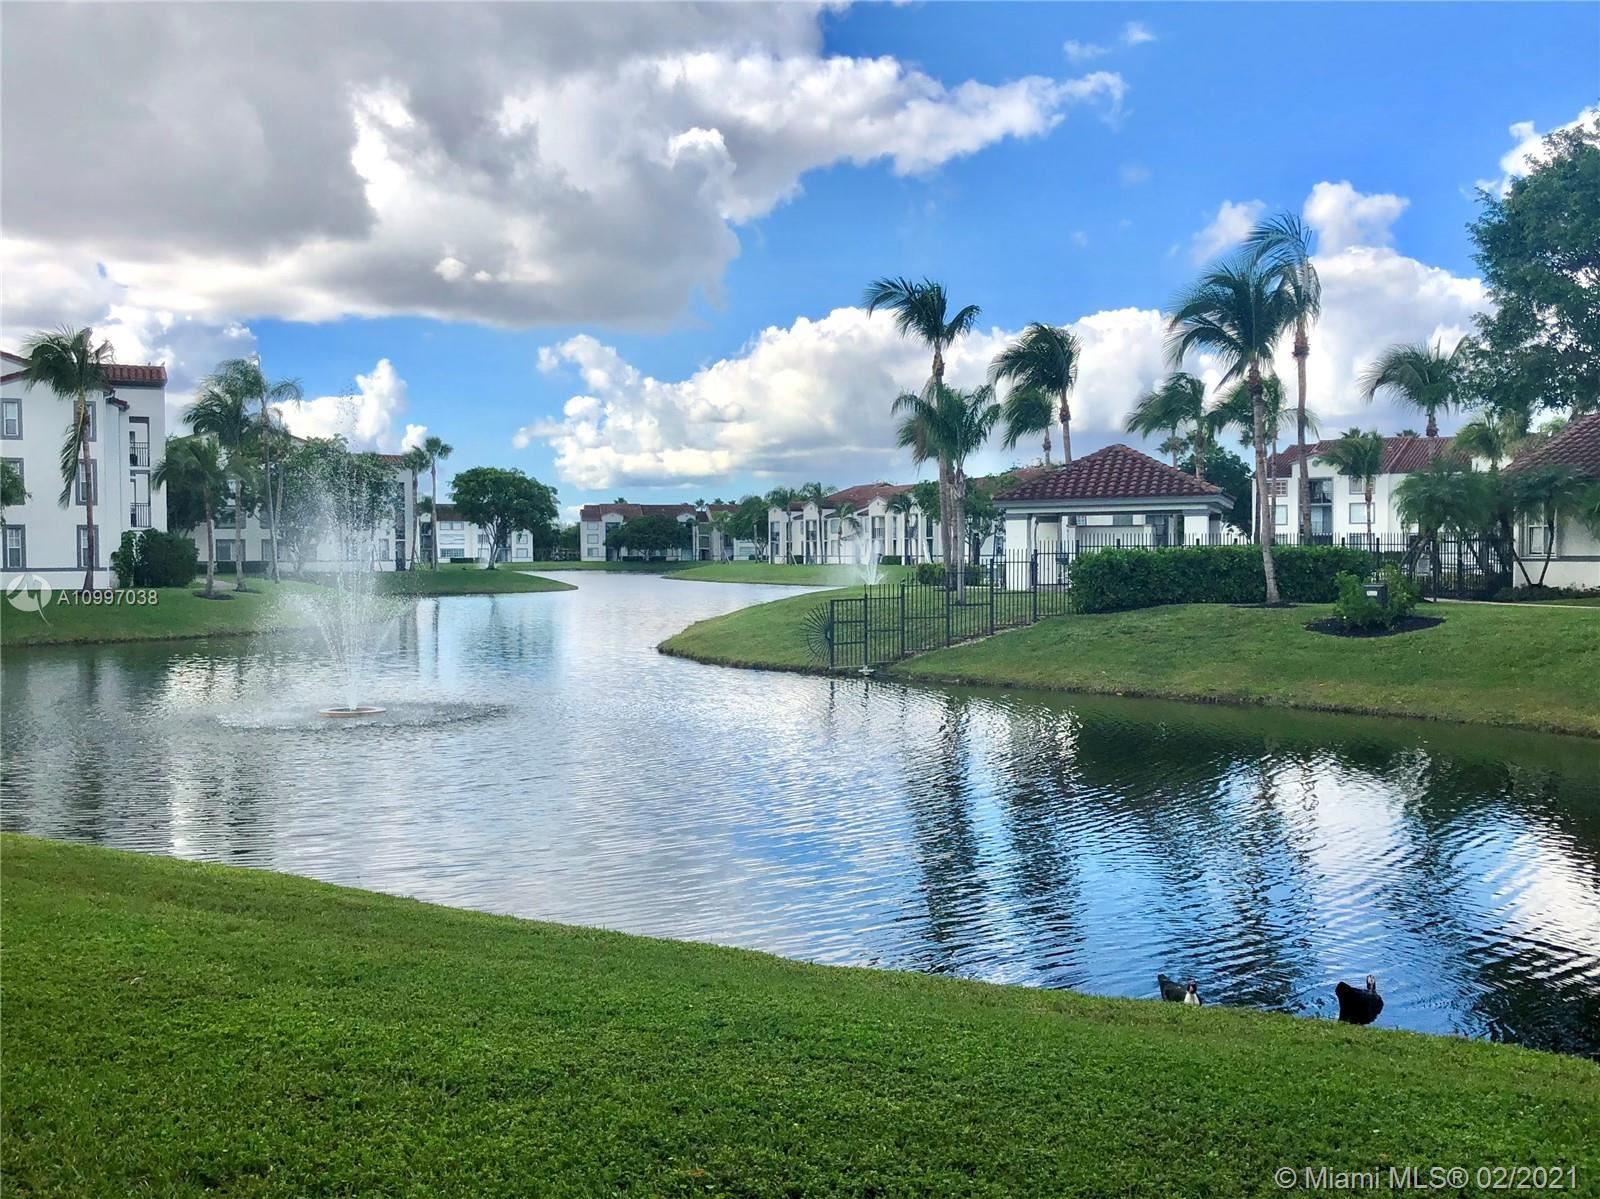 4320 NW 107th Ave #2051, Doral, FL 33178 - #: A10997038